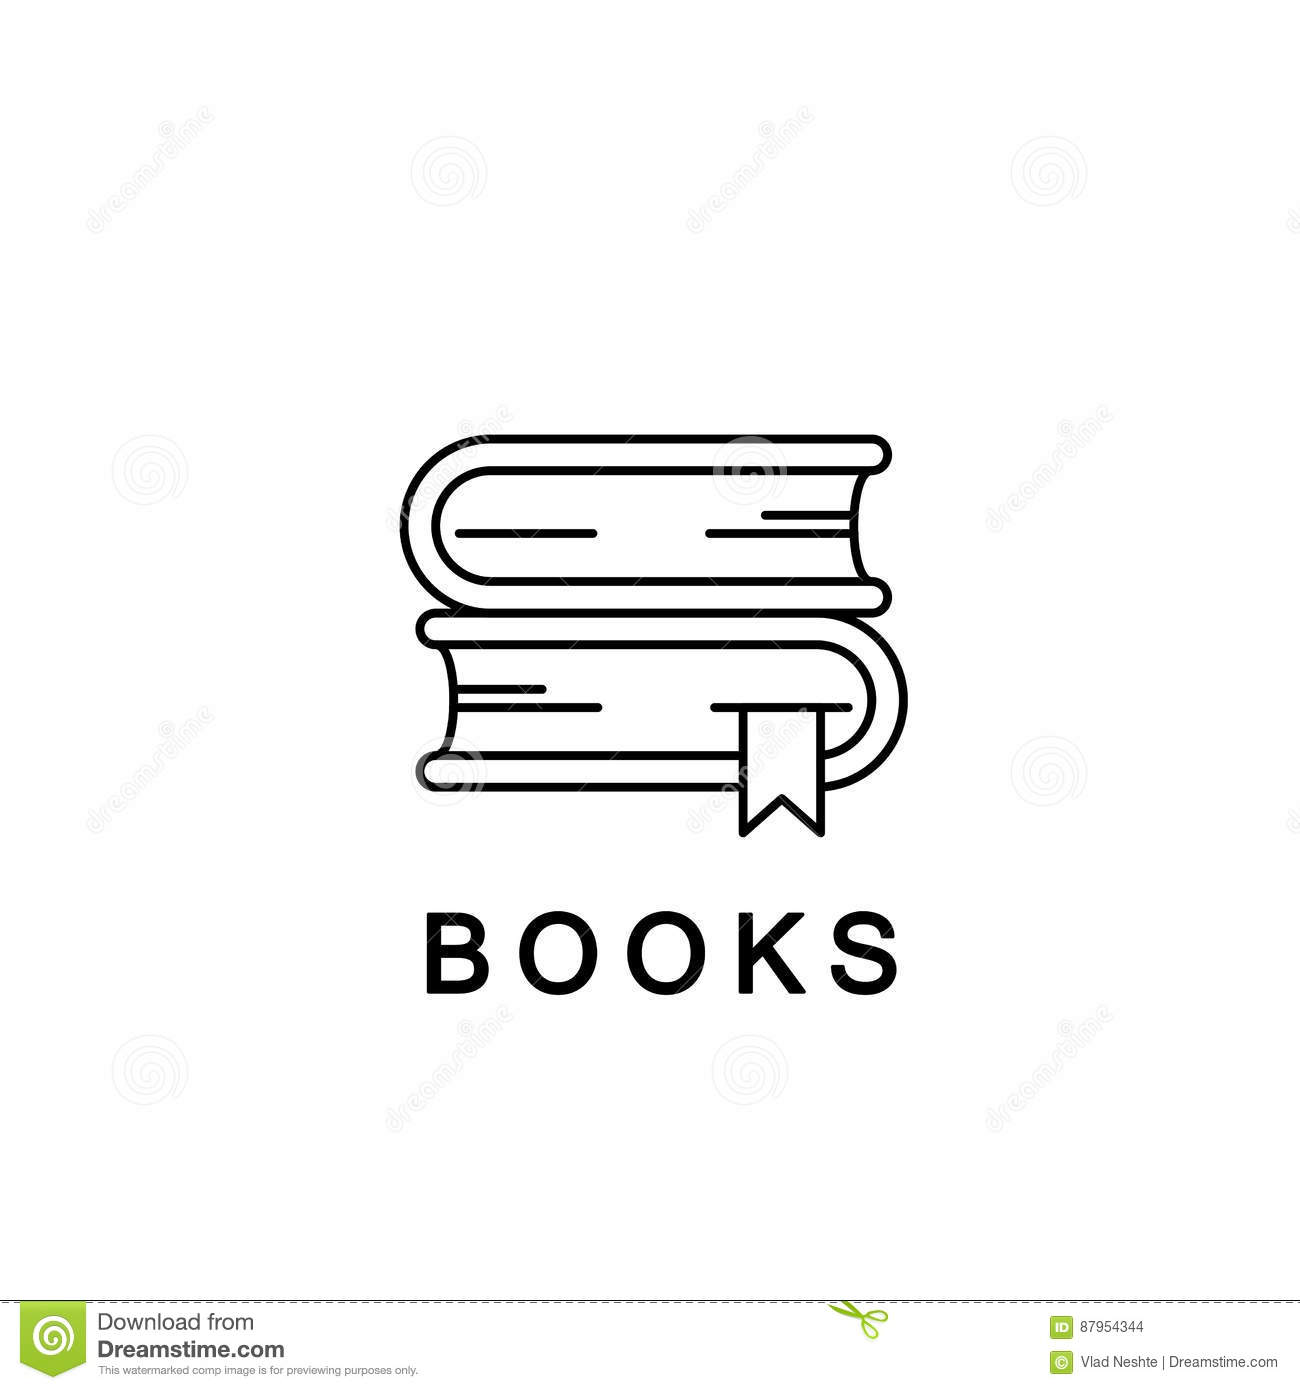 Books linear icon or logo. Vector line illustration. School textbooks with bookmarks, library symbol.